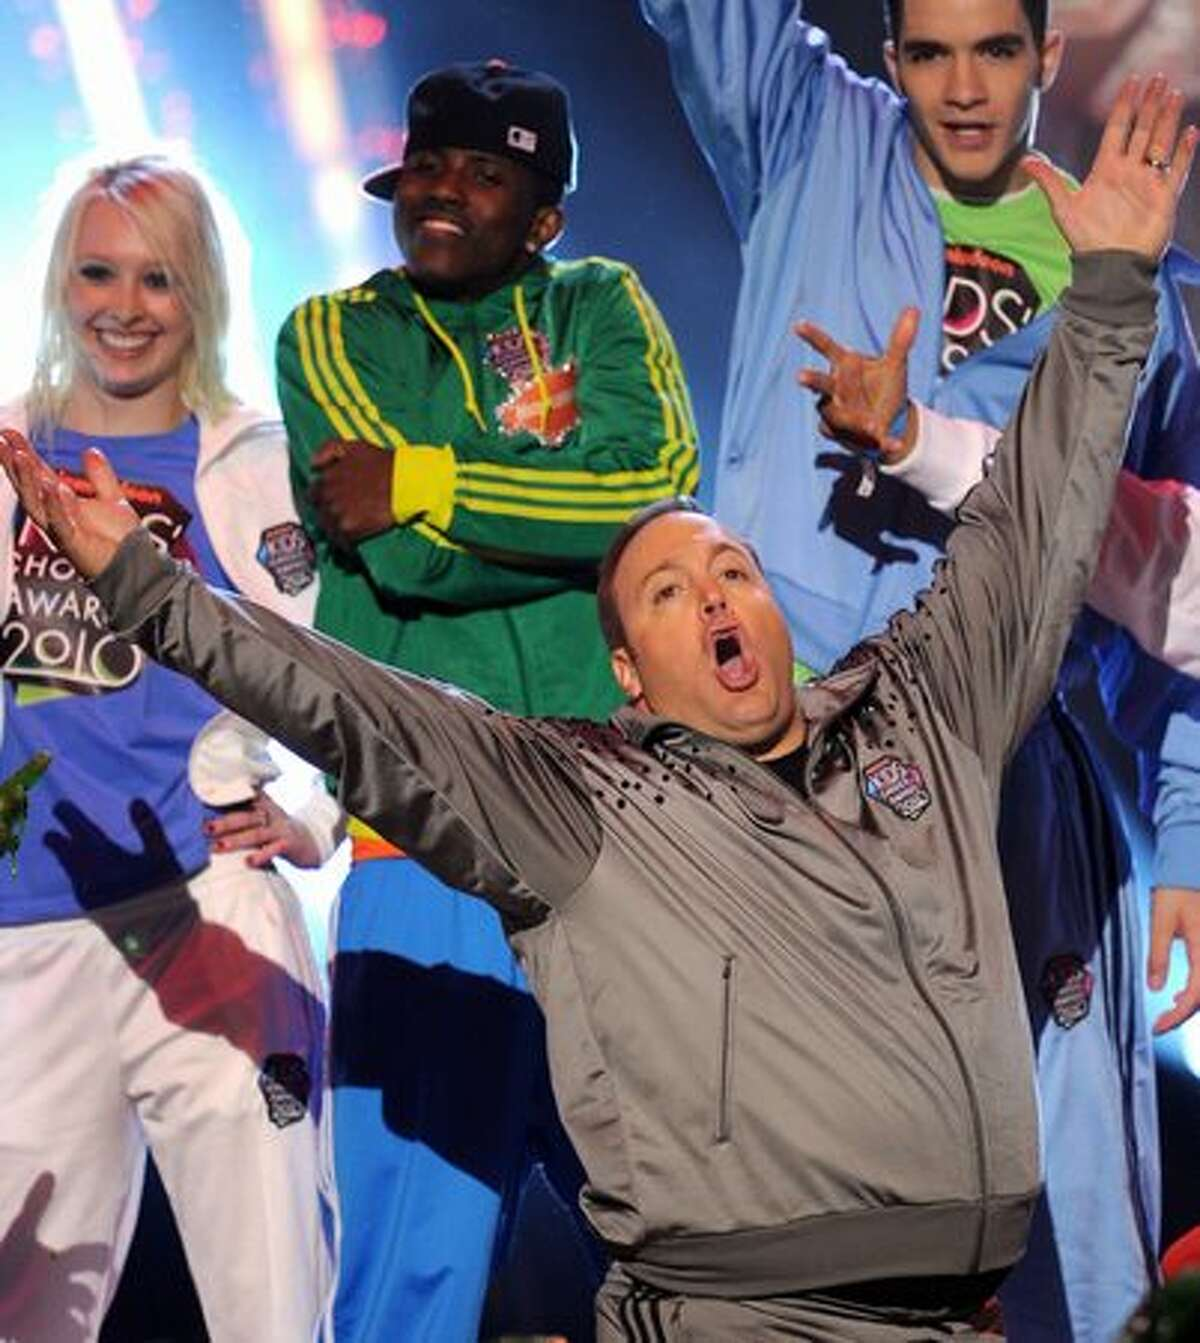 LOS ANGELES, CA - MARCH 27: Host Kevin James onstage at Nickelodeon's 23rd Annual Kids' Choice Awards held at UCLA's Pauley Pavilion on March 27, 2010 in Los Angeles, California.